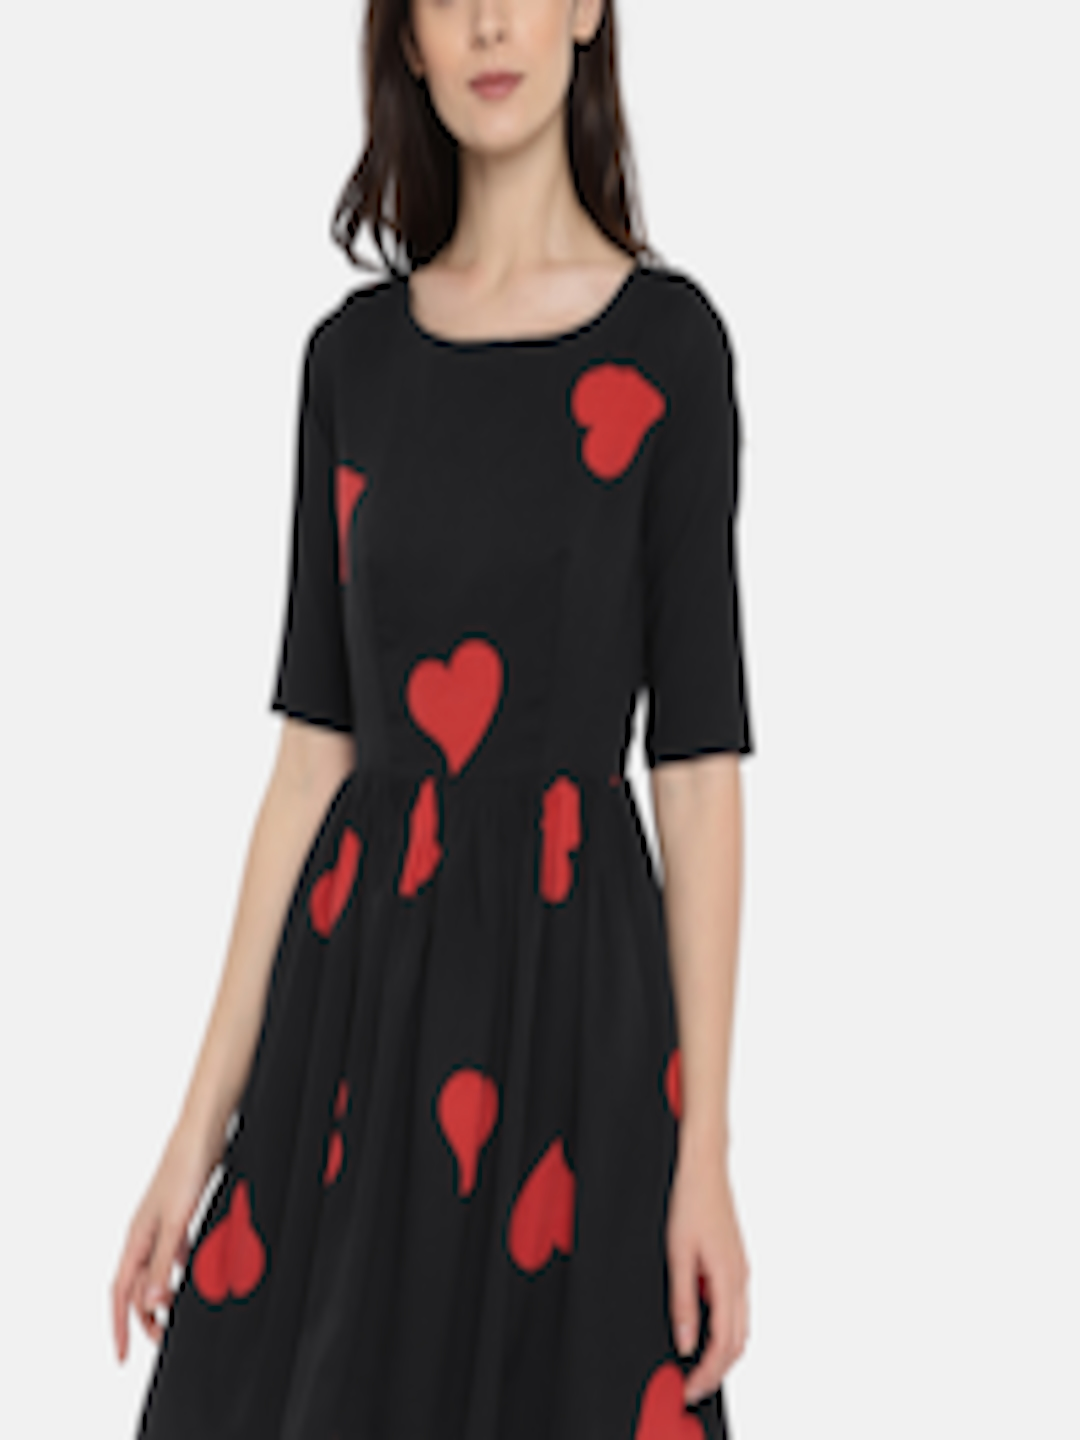 3edc3b7556 Buy ROVING MODE Women Black   Red Heart Print Fit And Flare Dress ...